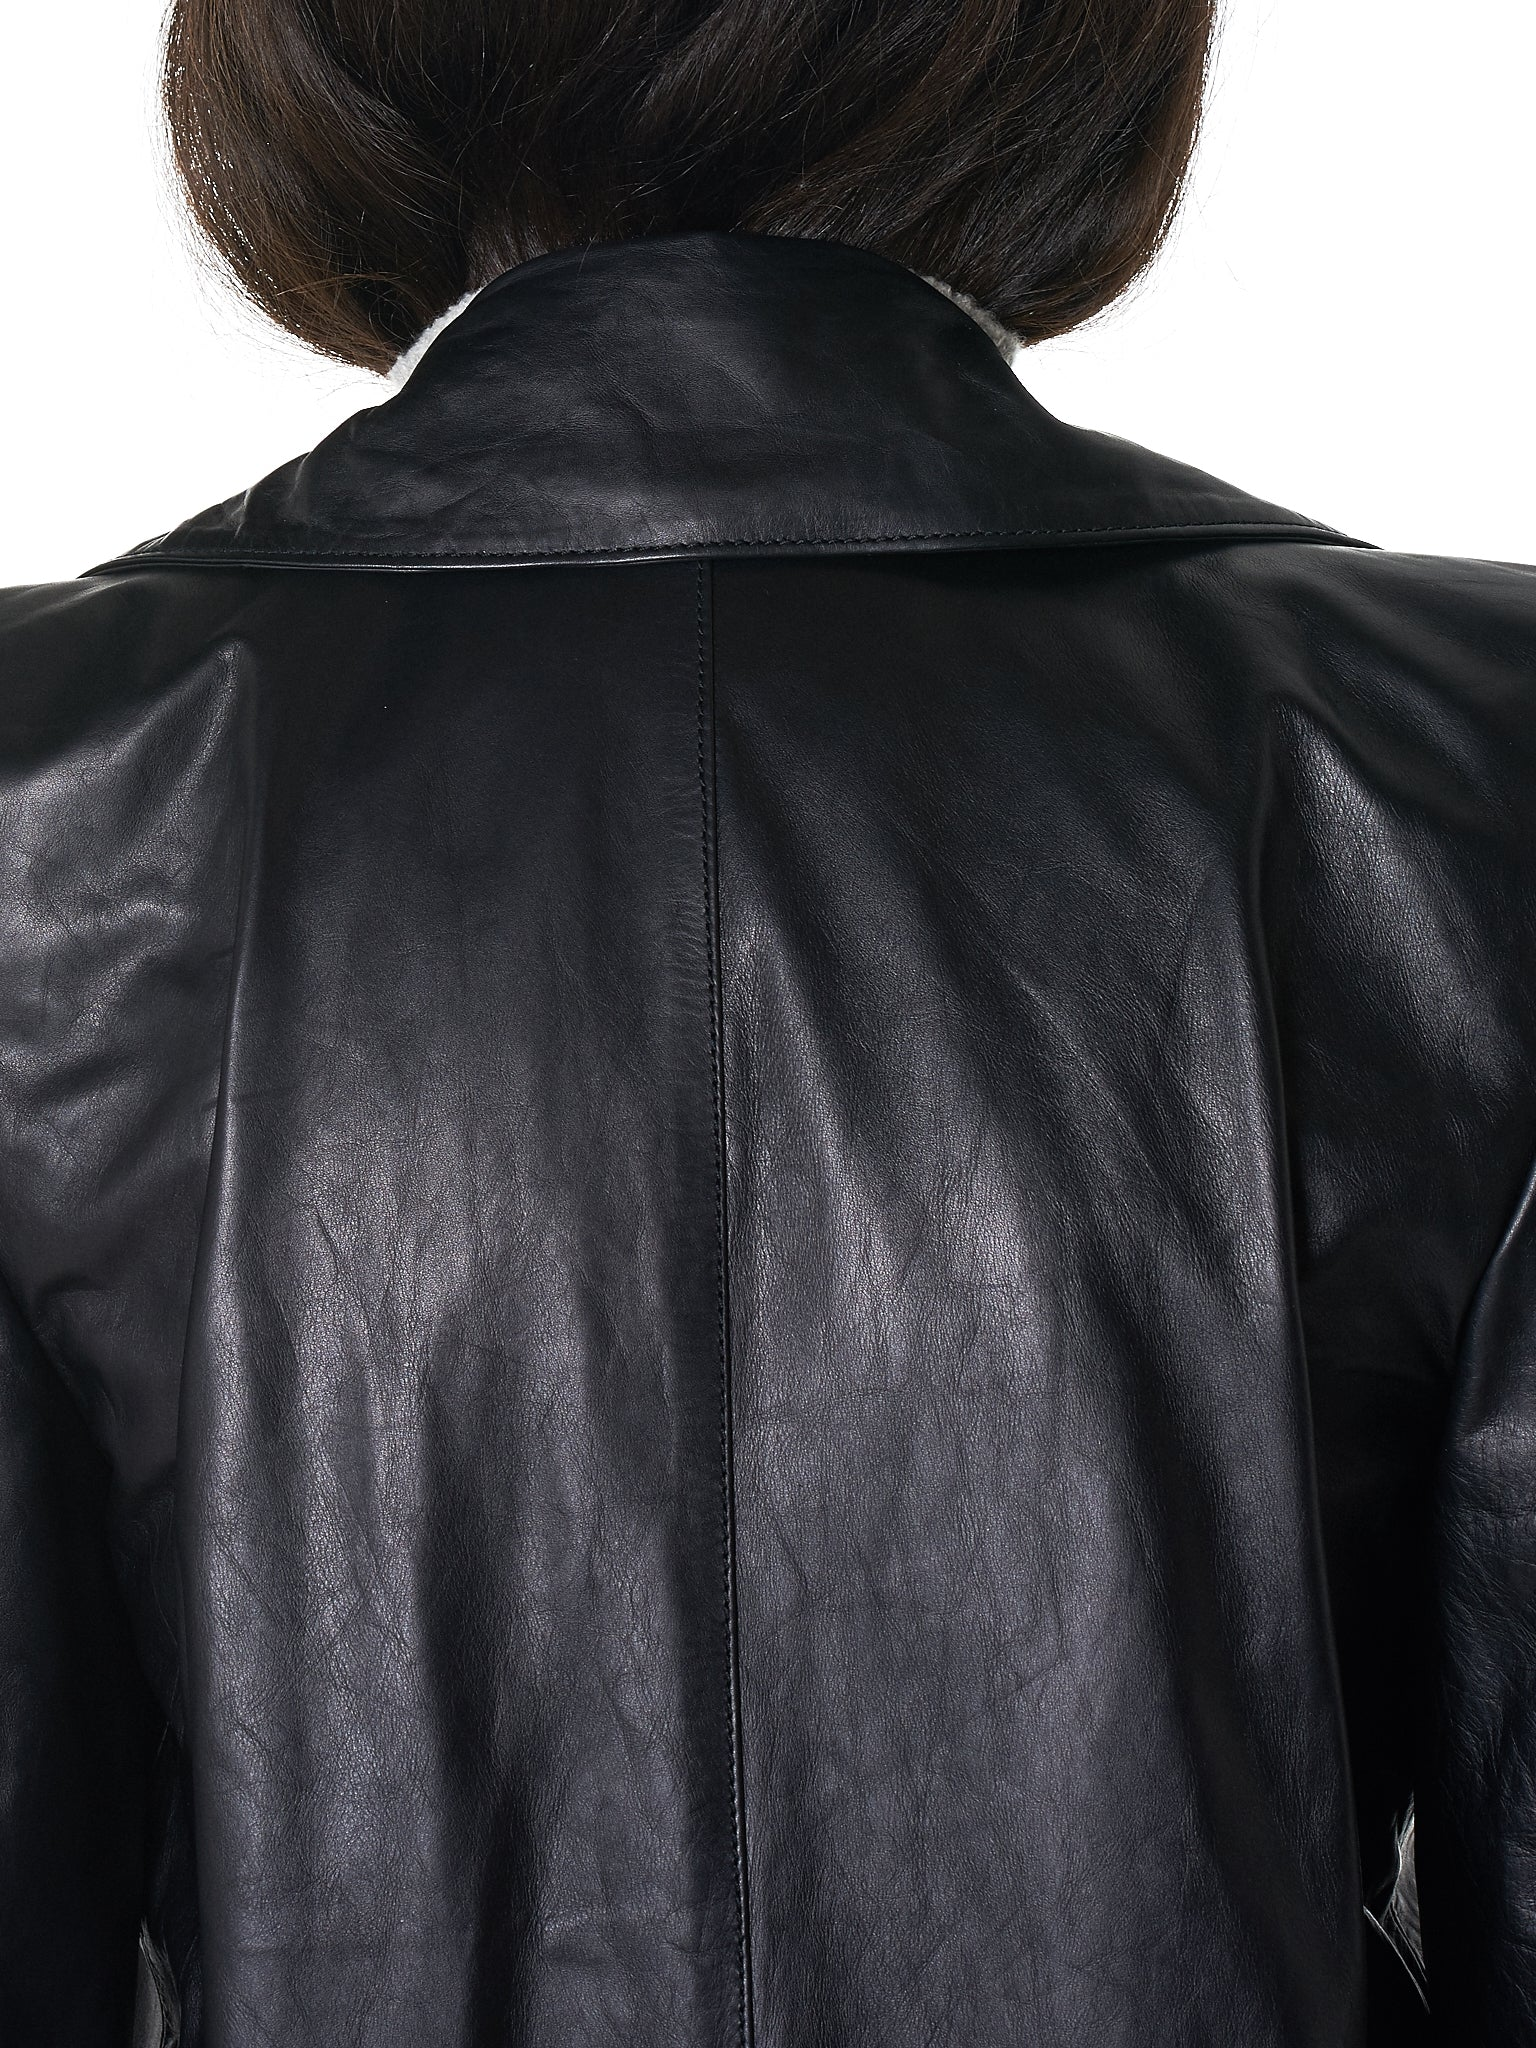 Unravel Leather Coat - Hlorenzo Detail 3